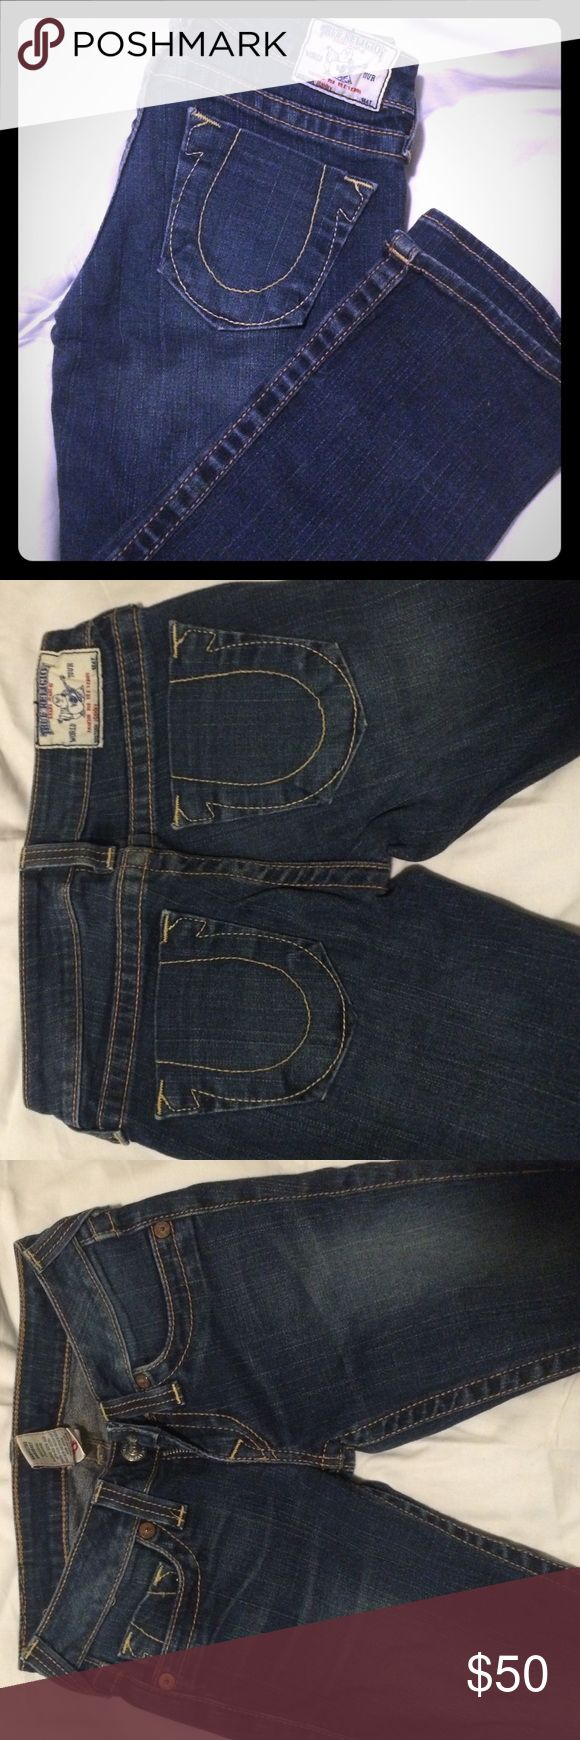 "❗️SALE❗️True Religion Jeans Great condition. Authentic True Religions. No stains or wear and tear.   Dark wash | Straight Legged Size: 25  Inseam: 33""  Feel free to make an offer & we can work something out! True Religion Jeans Straight Leg"